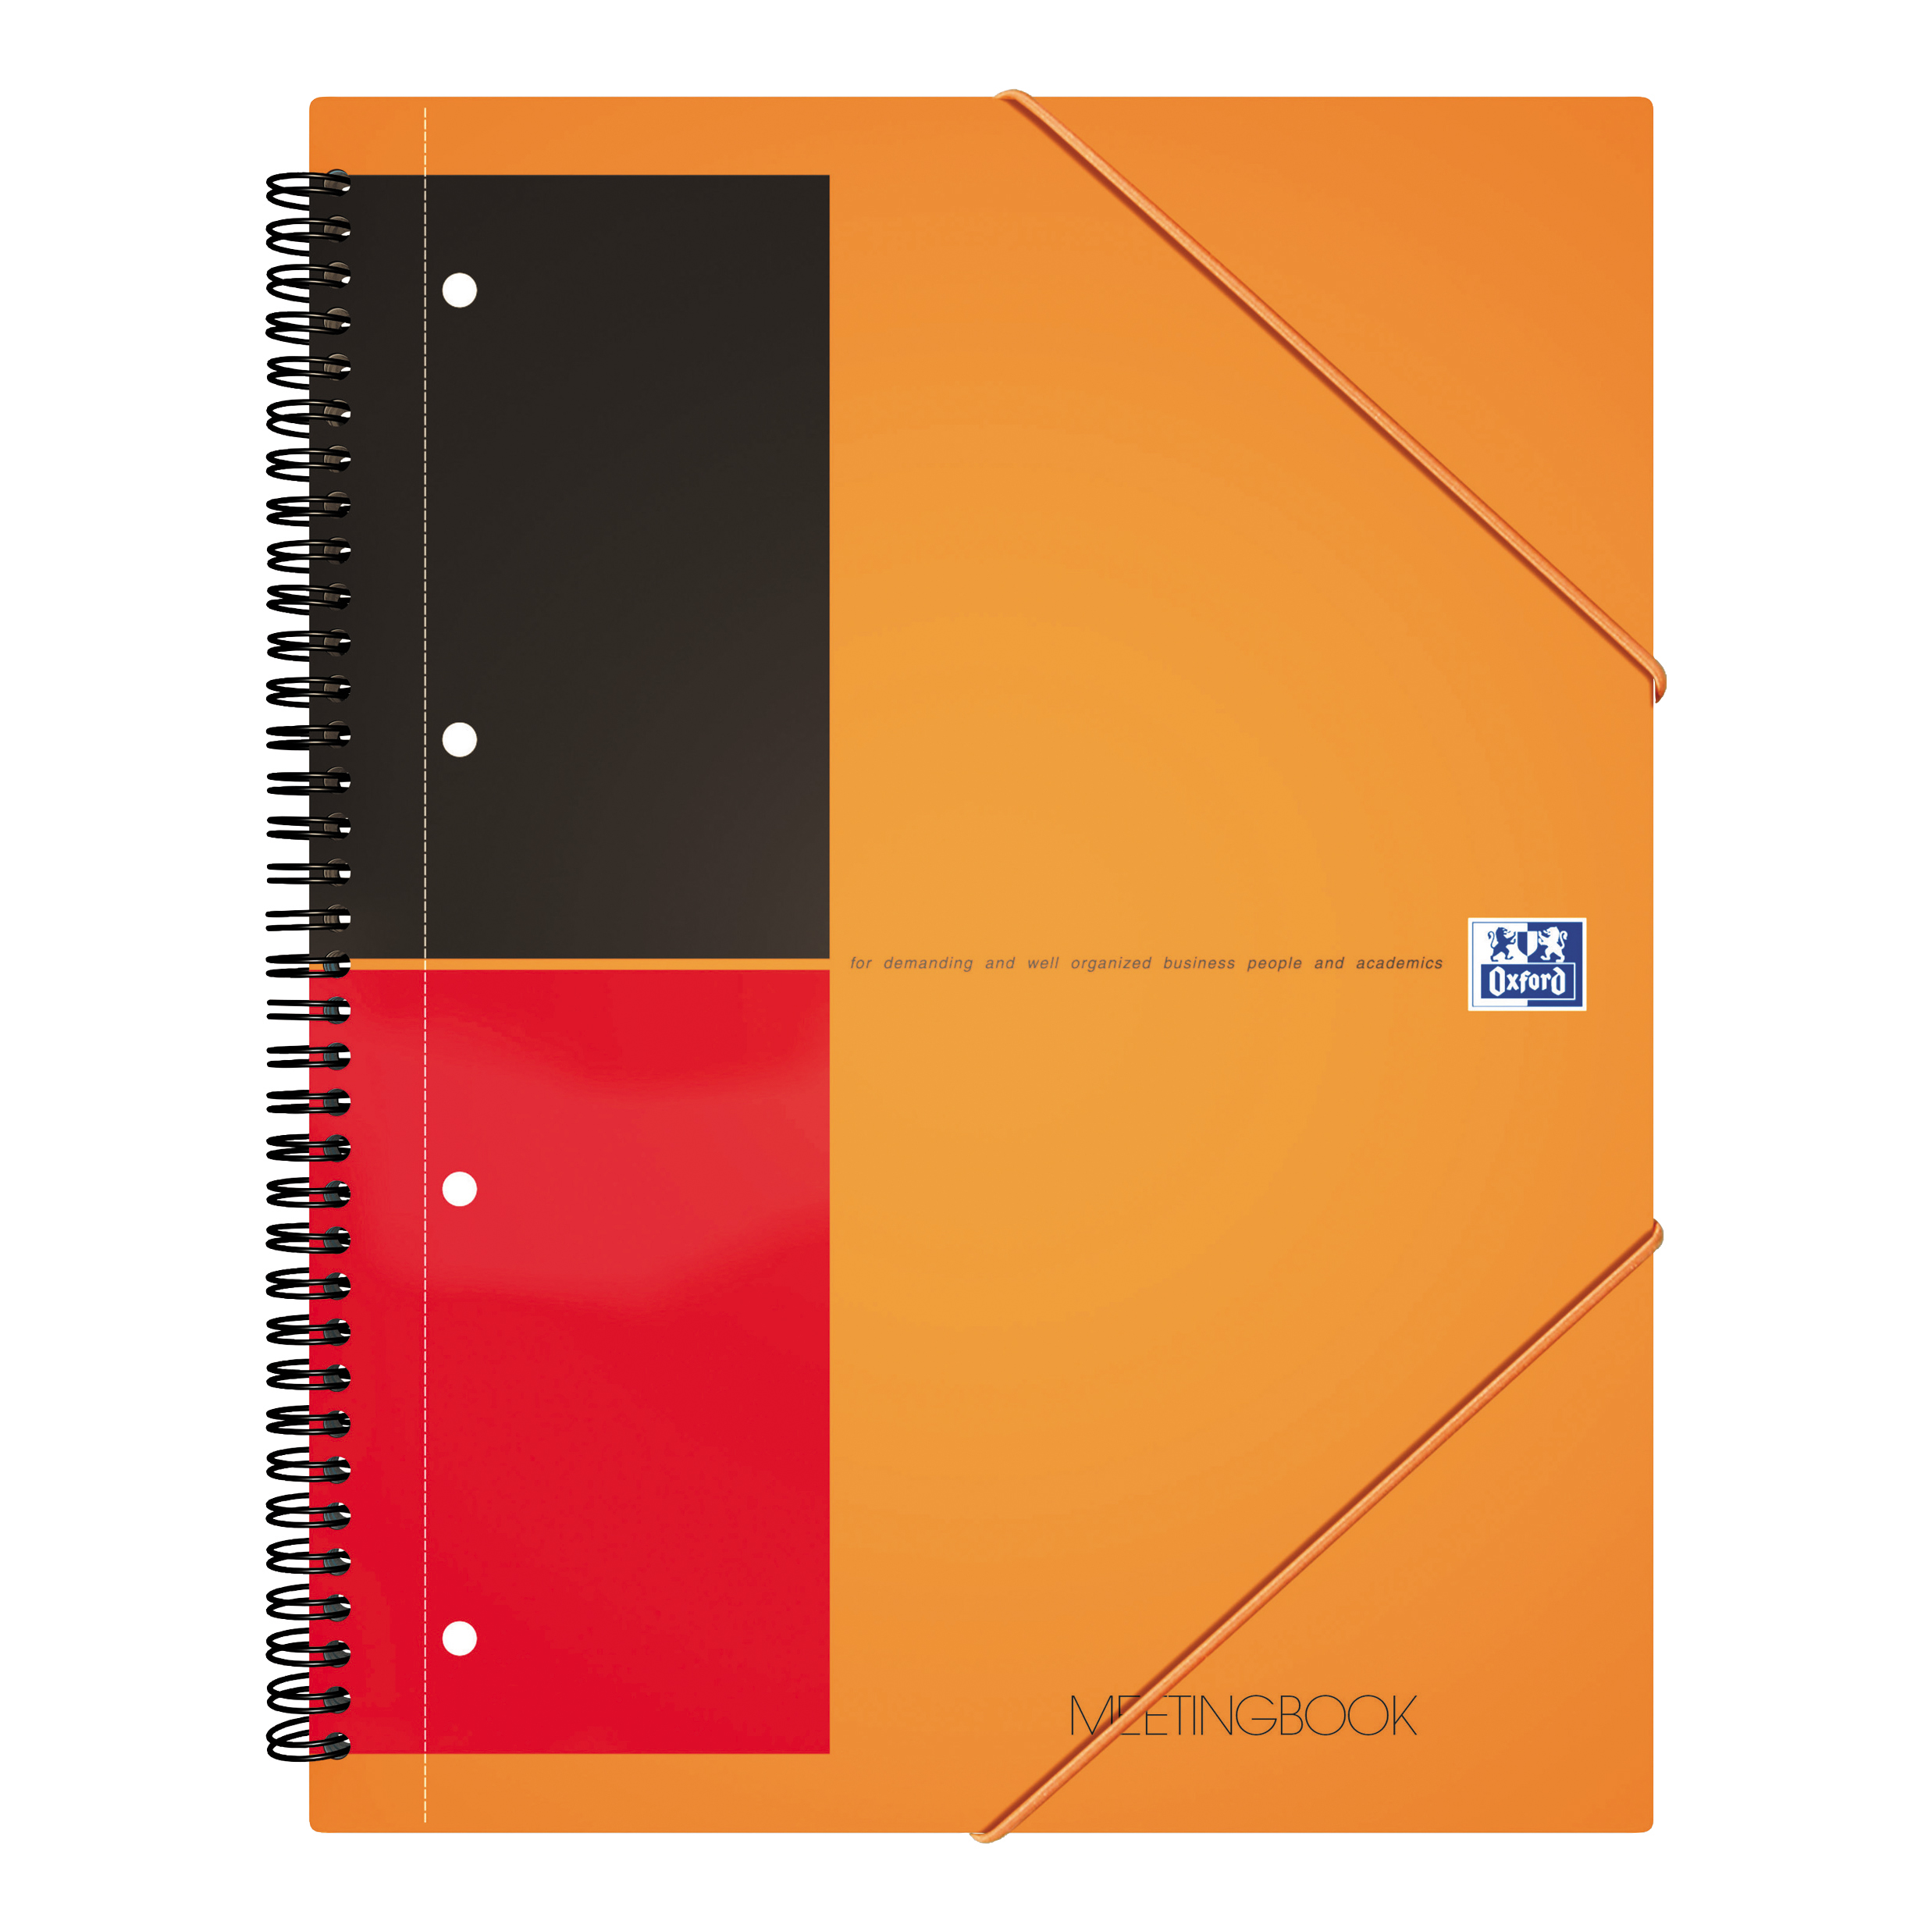 Oxford Int Meeting Nbk Poly Wbd 80gsm Smart Ruled Perf Punched 4 Holes 160pp A4+ Ref 100104296 [Pack 5]